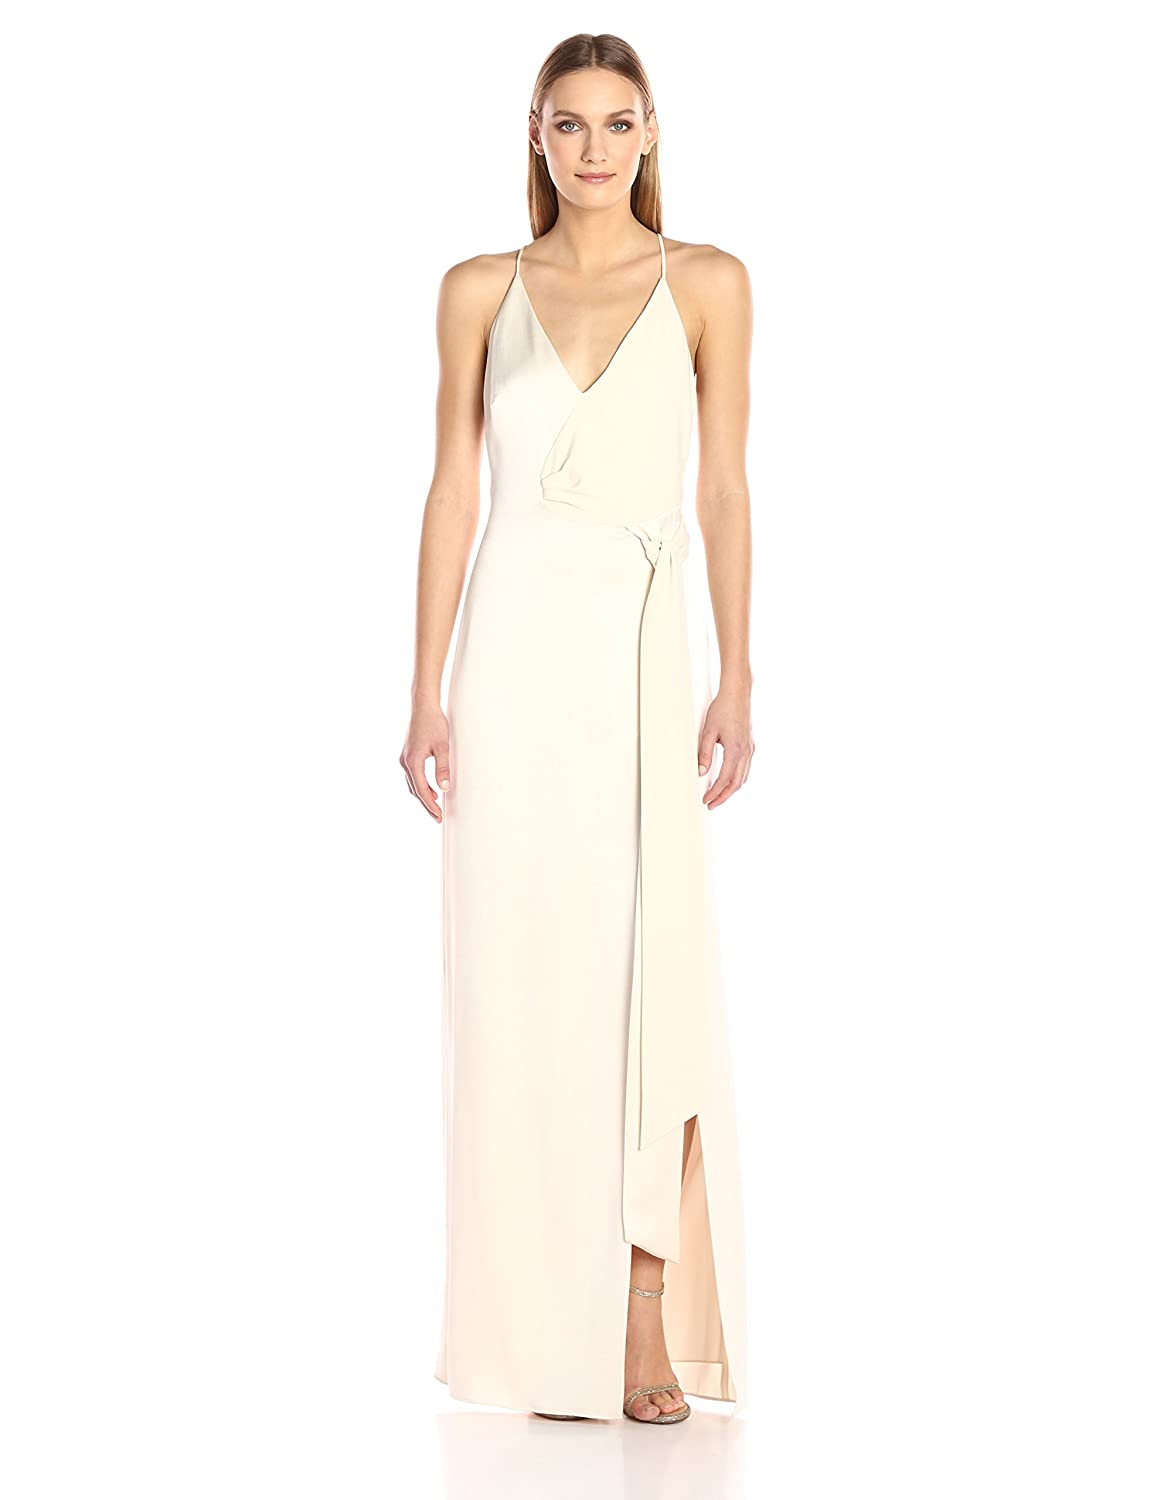 c94018a4176c Halston Heritage Women's Sleeveless V Neck Satin Slip Gown Sash: Amazon.in:  Clothing & Accessories